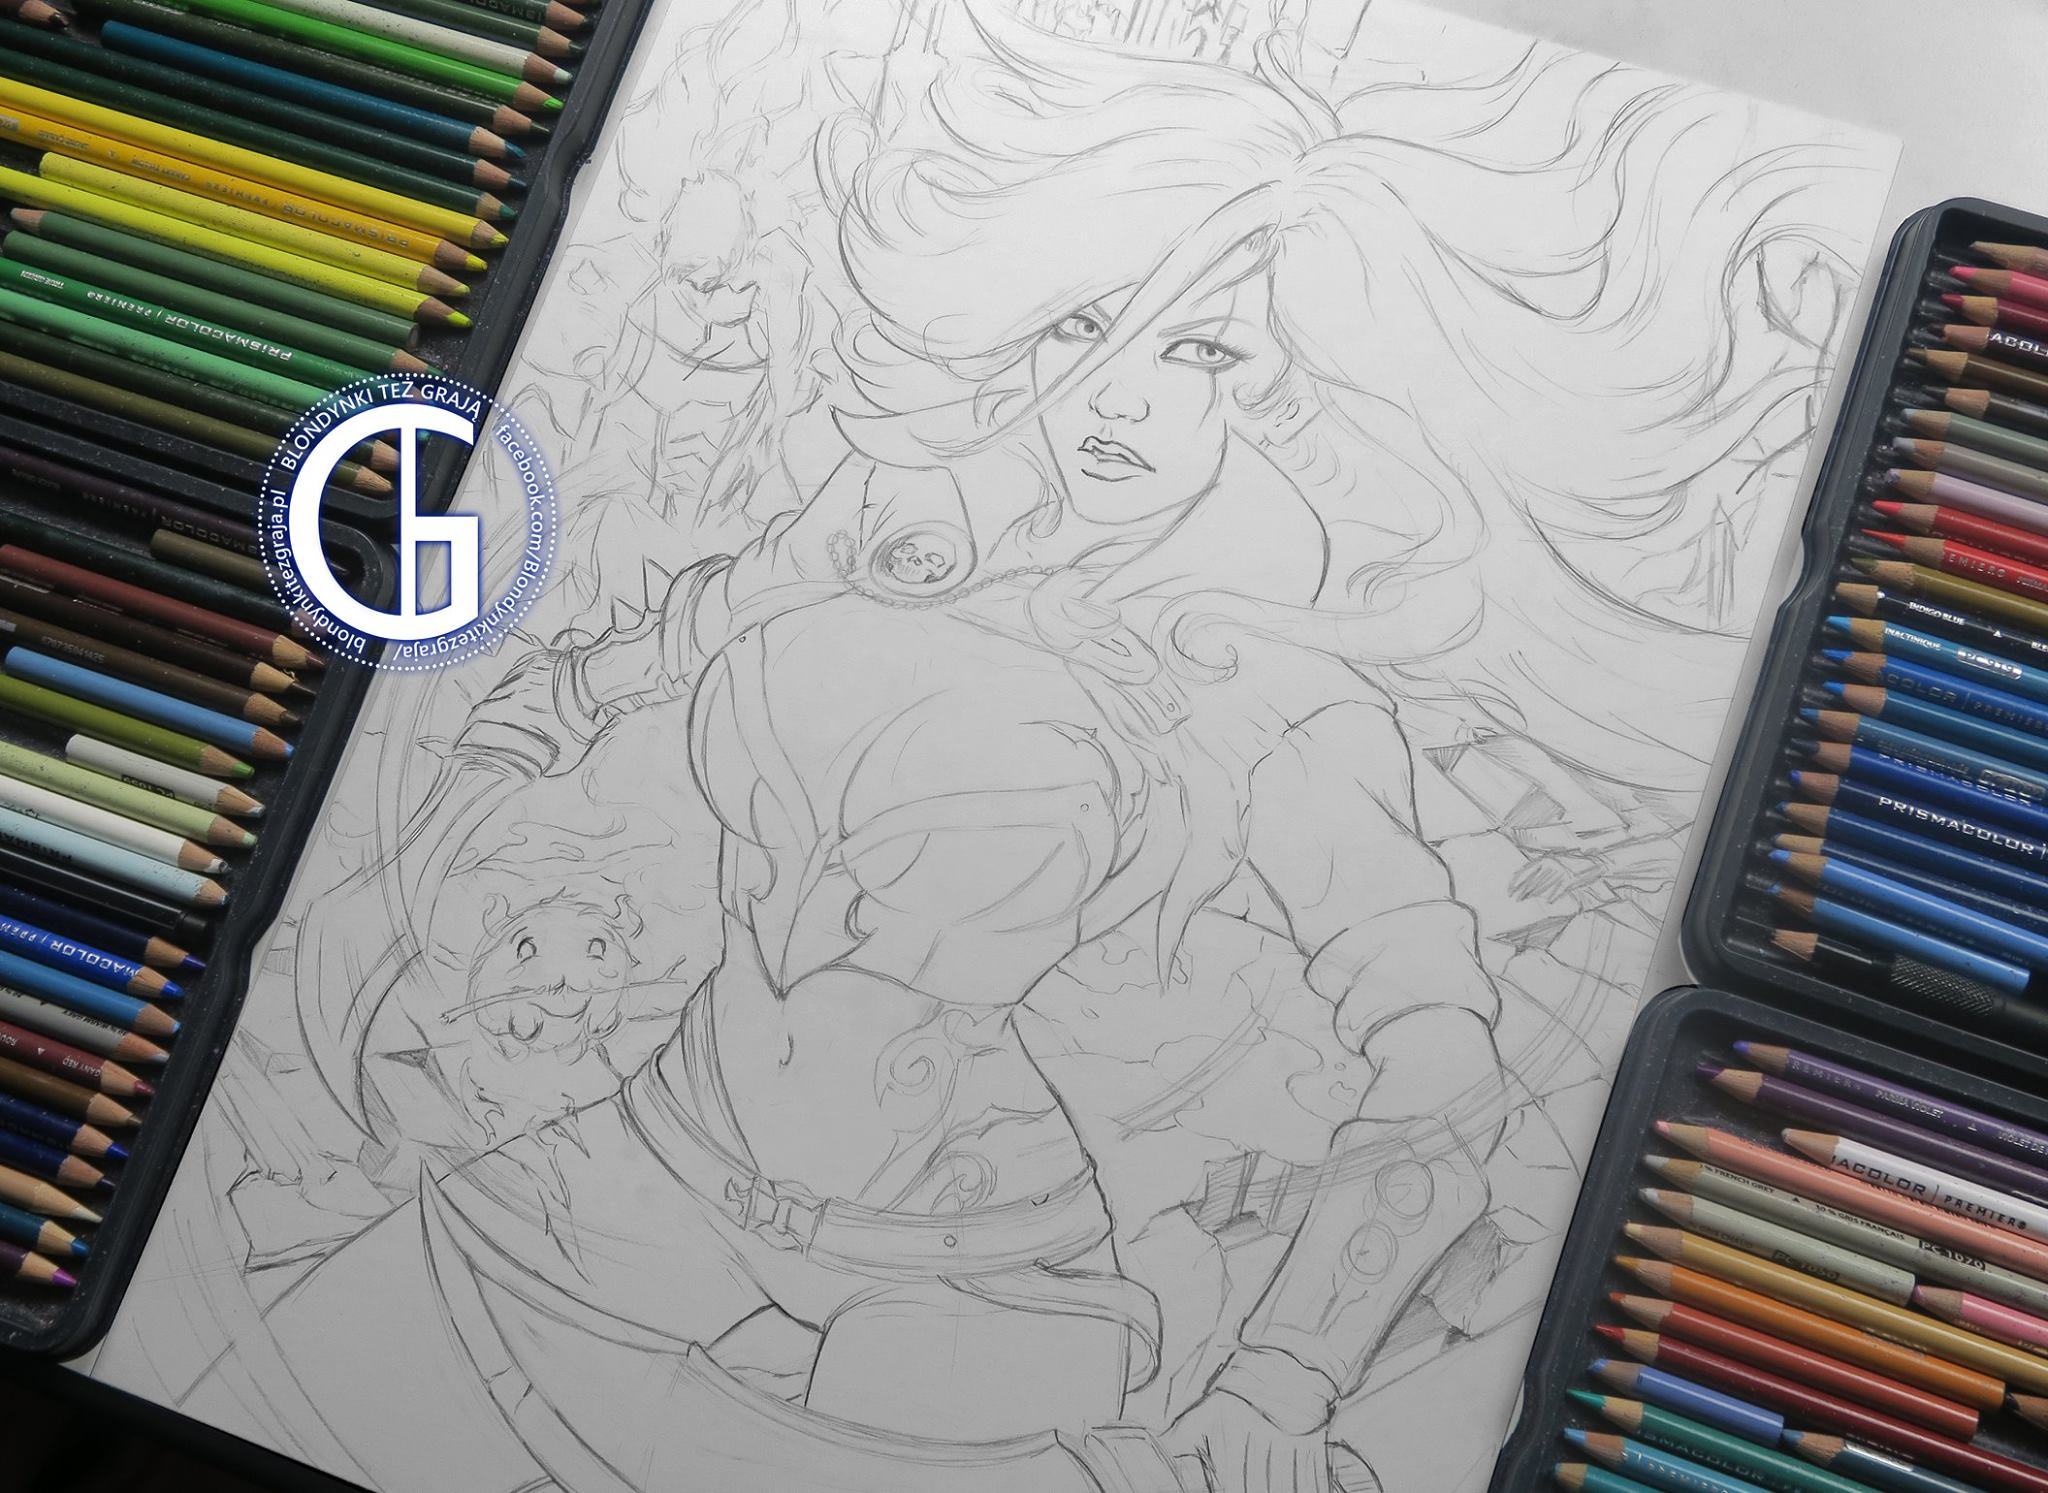 Katarina drawing sketch League of Legends